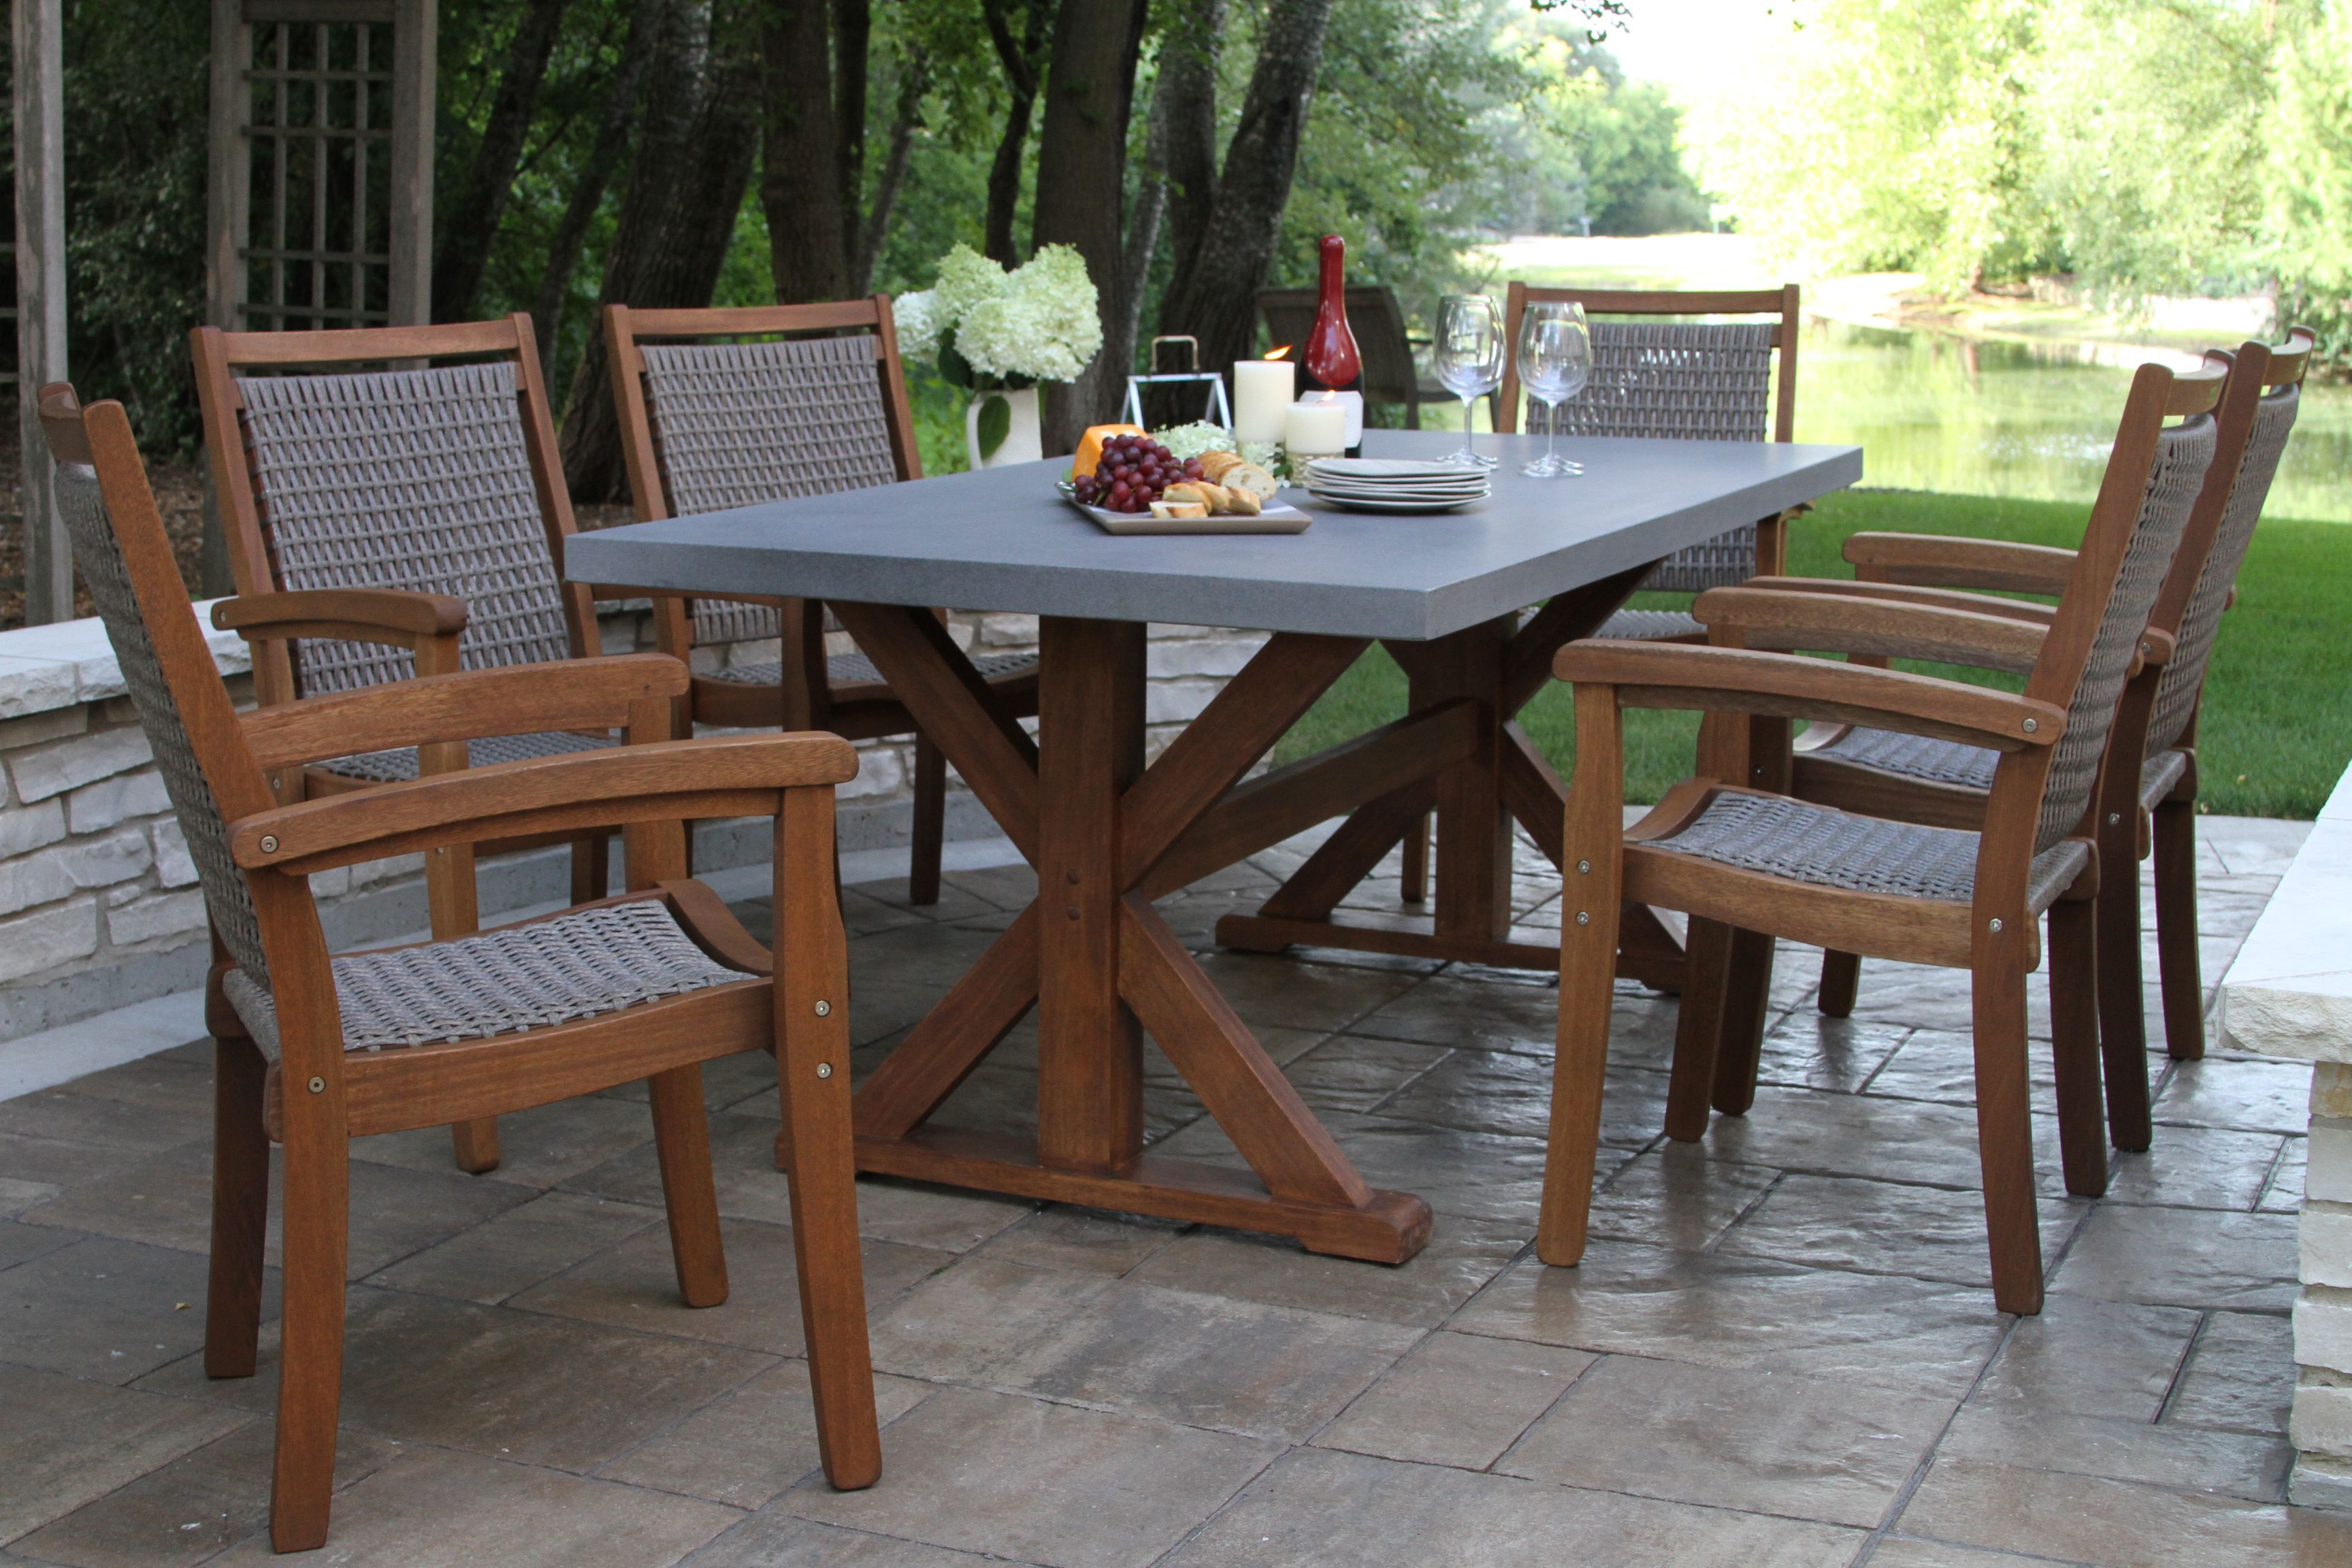 Pin On Outdoor Interiors Brazilian Eucalyptus Furniture Collections